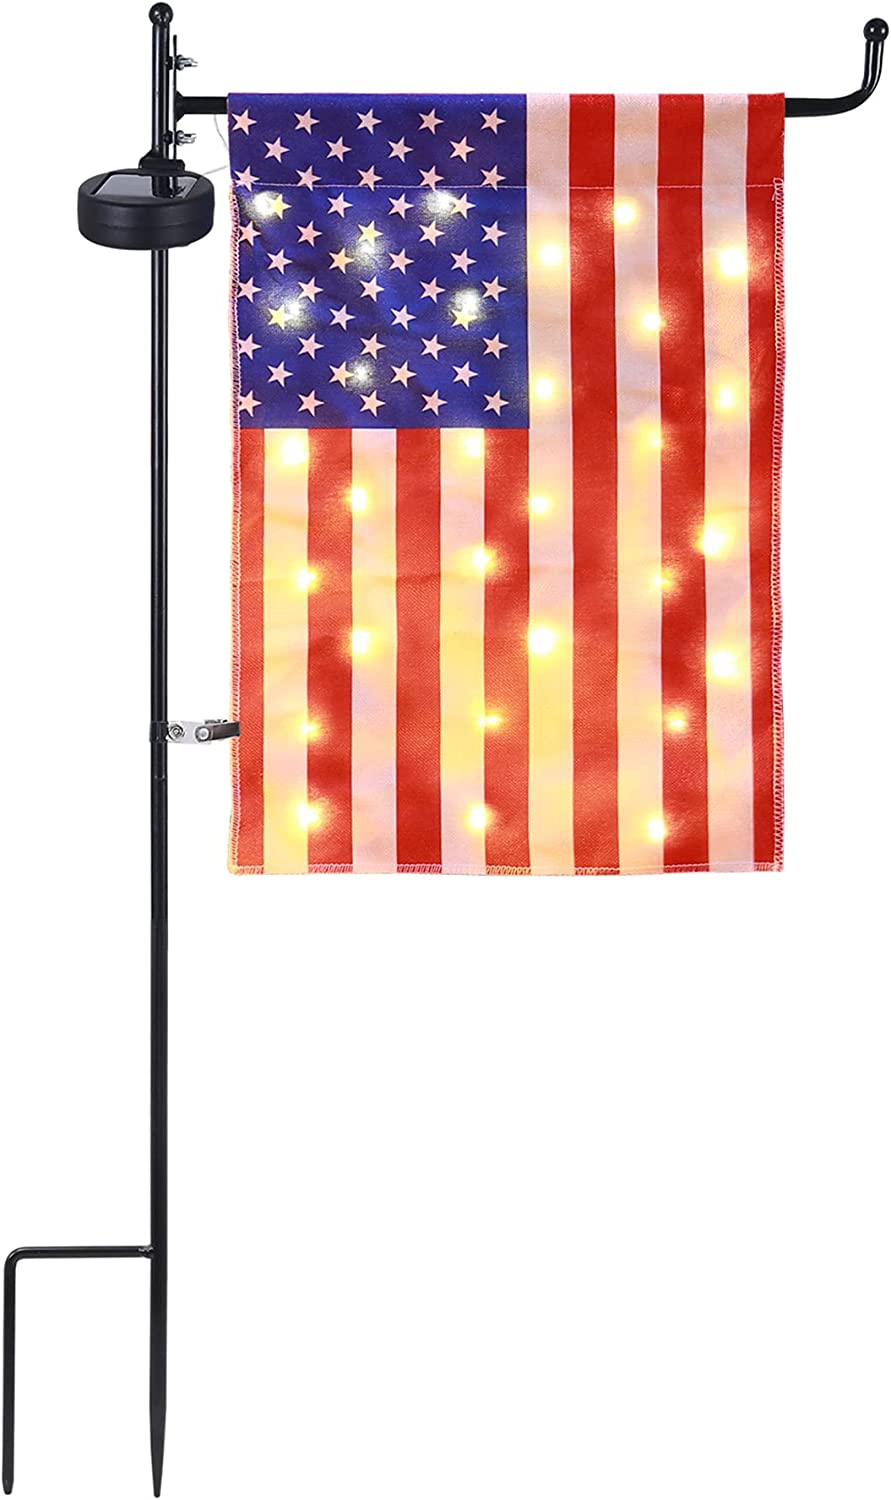 American Flag Garden Flag with Pole, Solar Powered LED USA Flags with Metal Holder Stand, 12x16.5 Inch Double Sided Flag for Outside In Ground, Weather-Resistant Outdoor Flag for Patio Yard Path Doorway